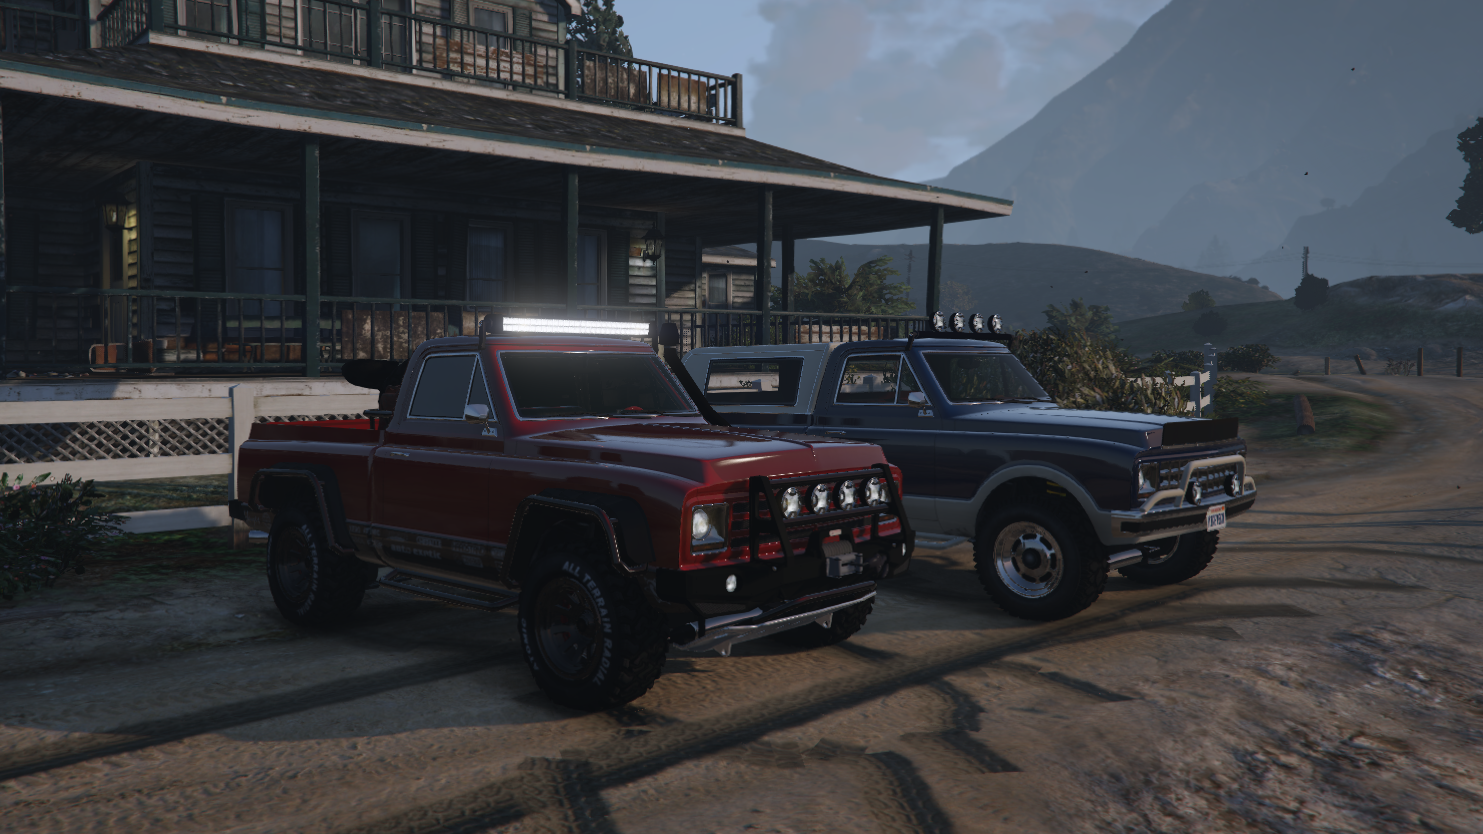 Grand_Theft_Auto_V_1_9_2563_23_11_35_2.png